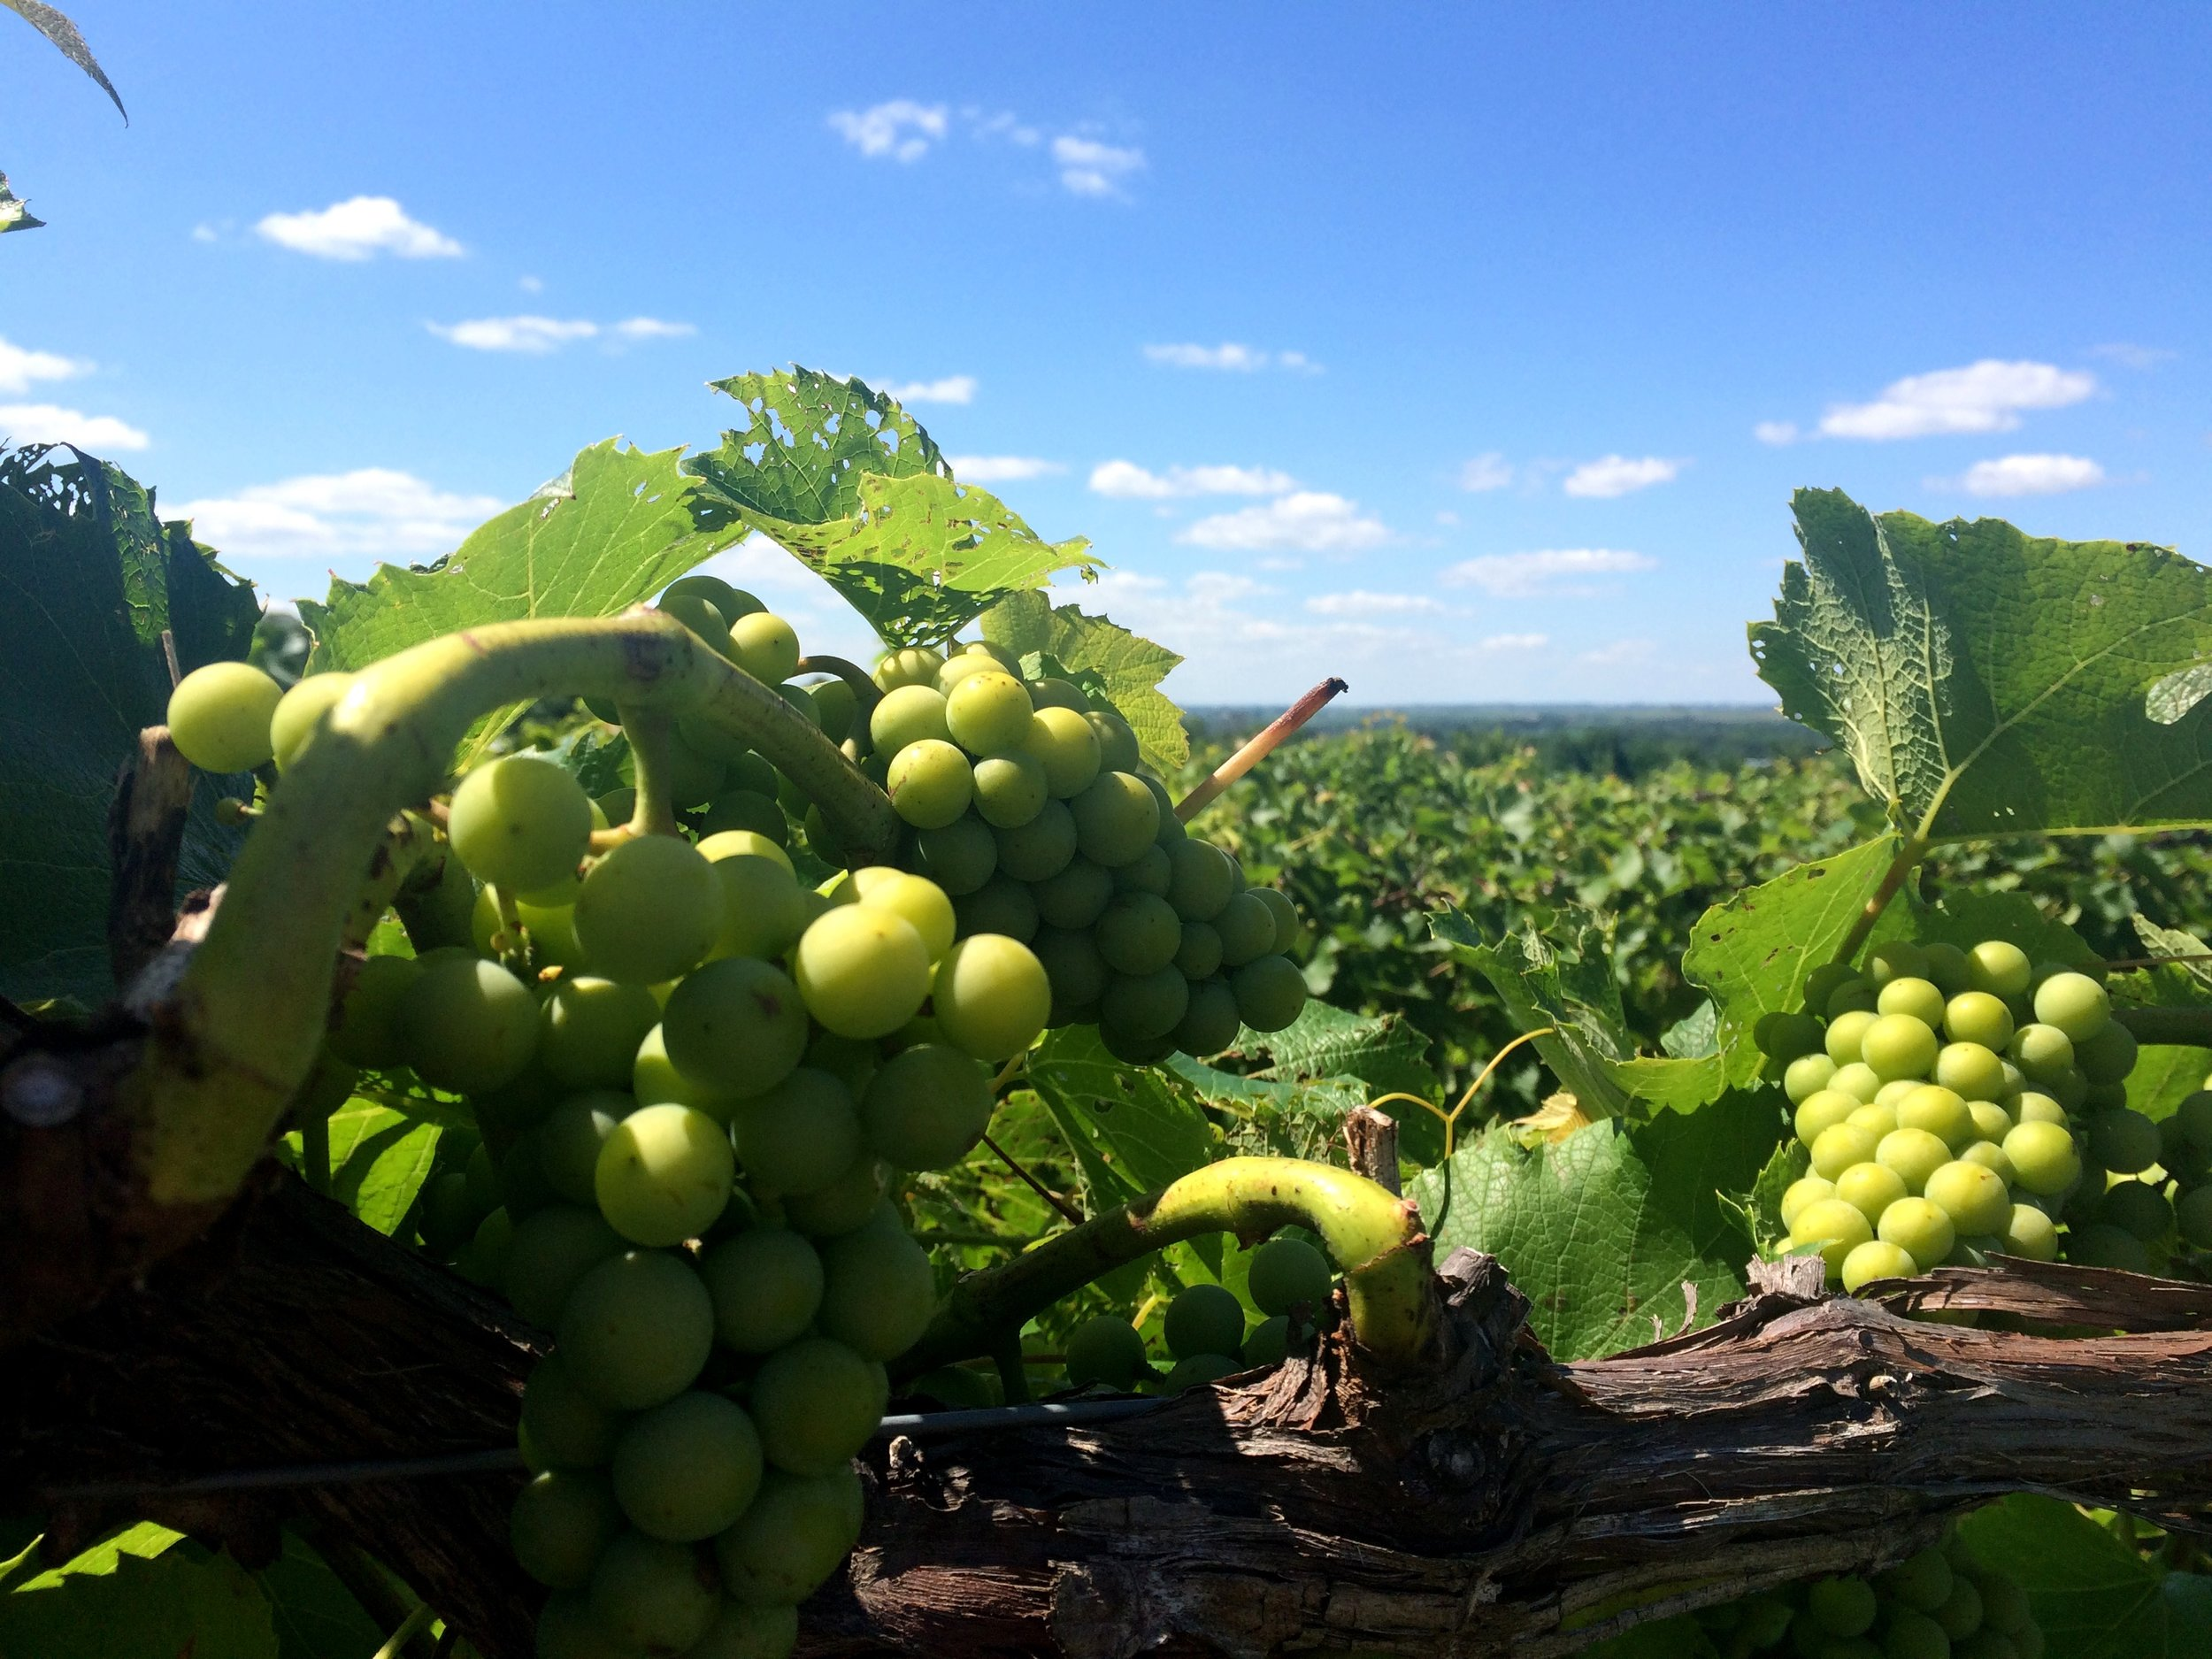 Galena Grapes on Vines